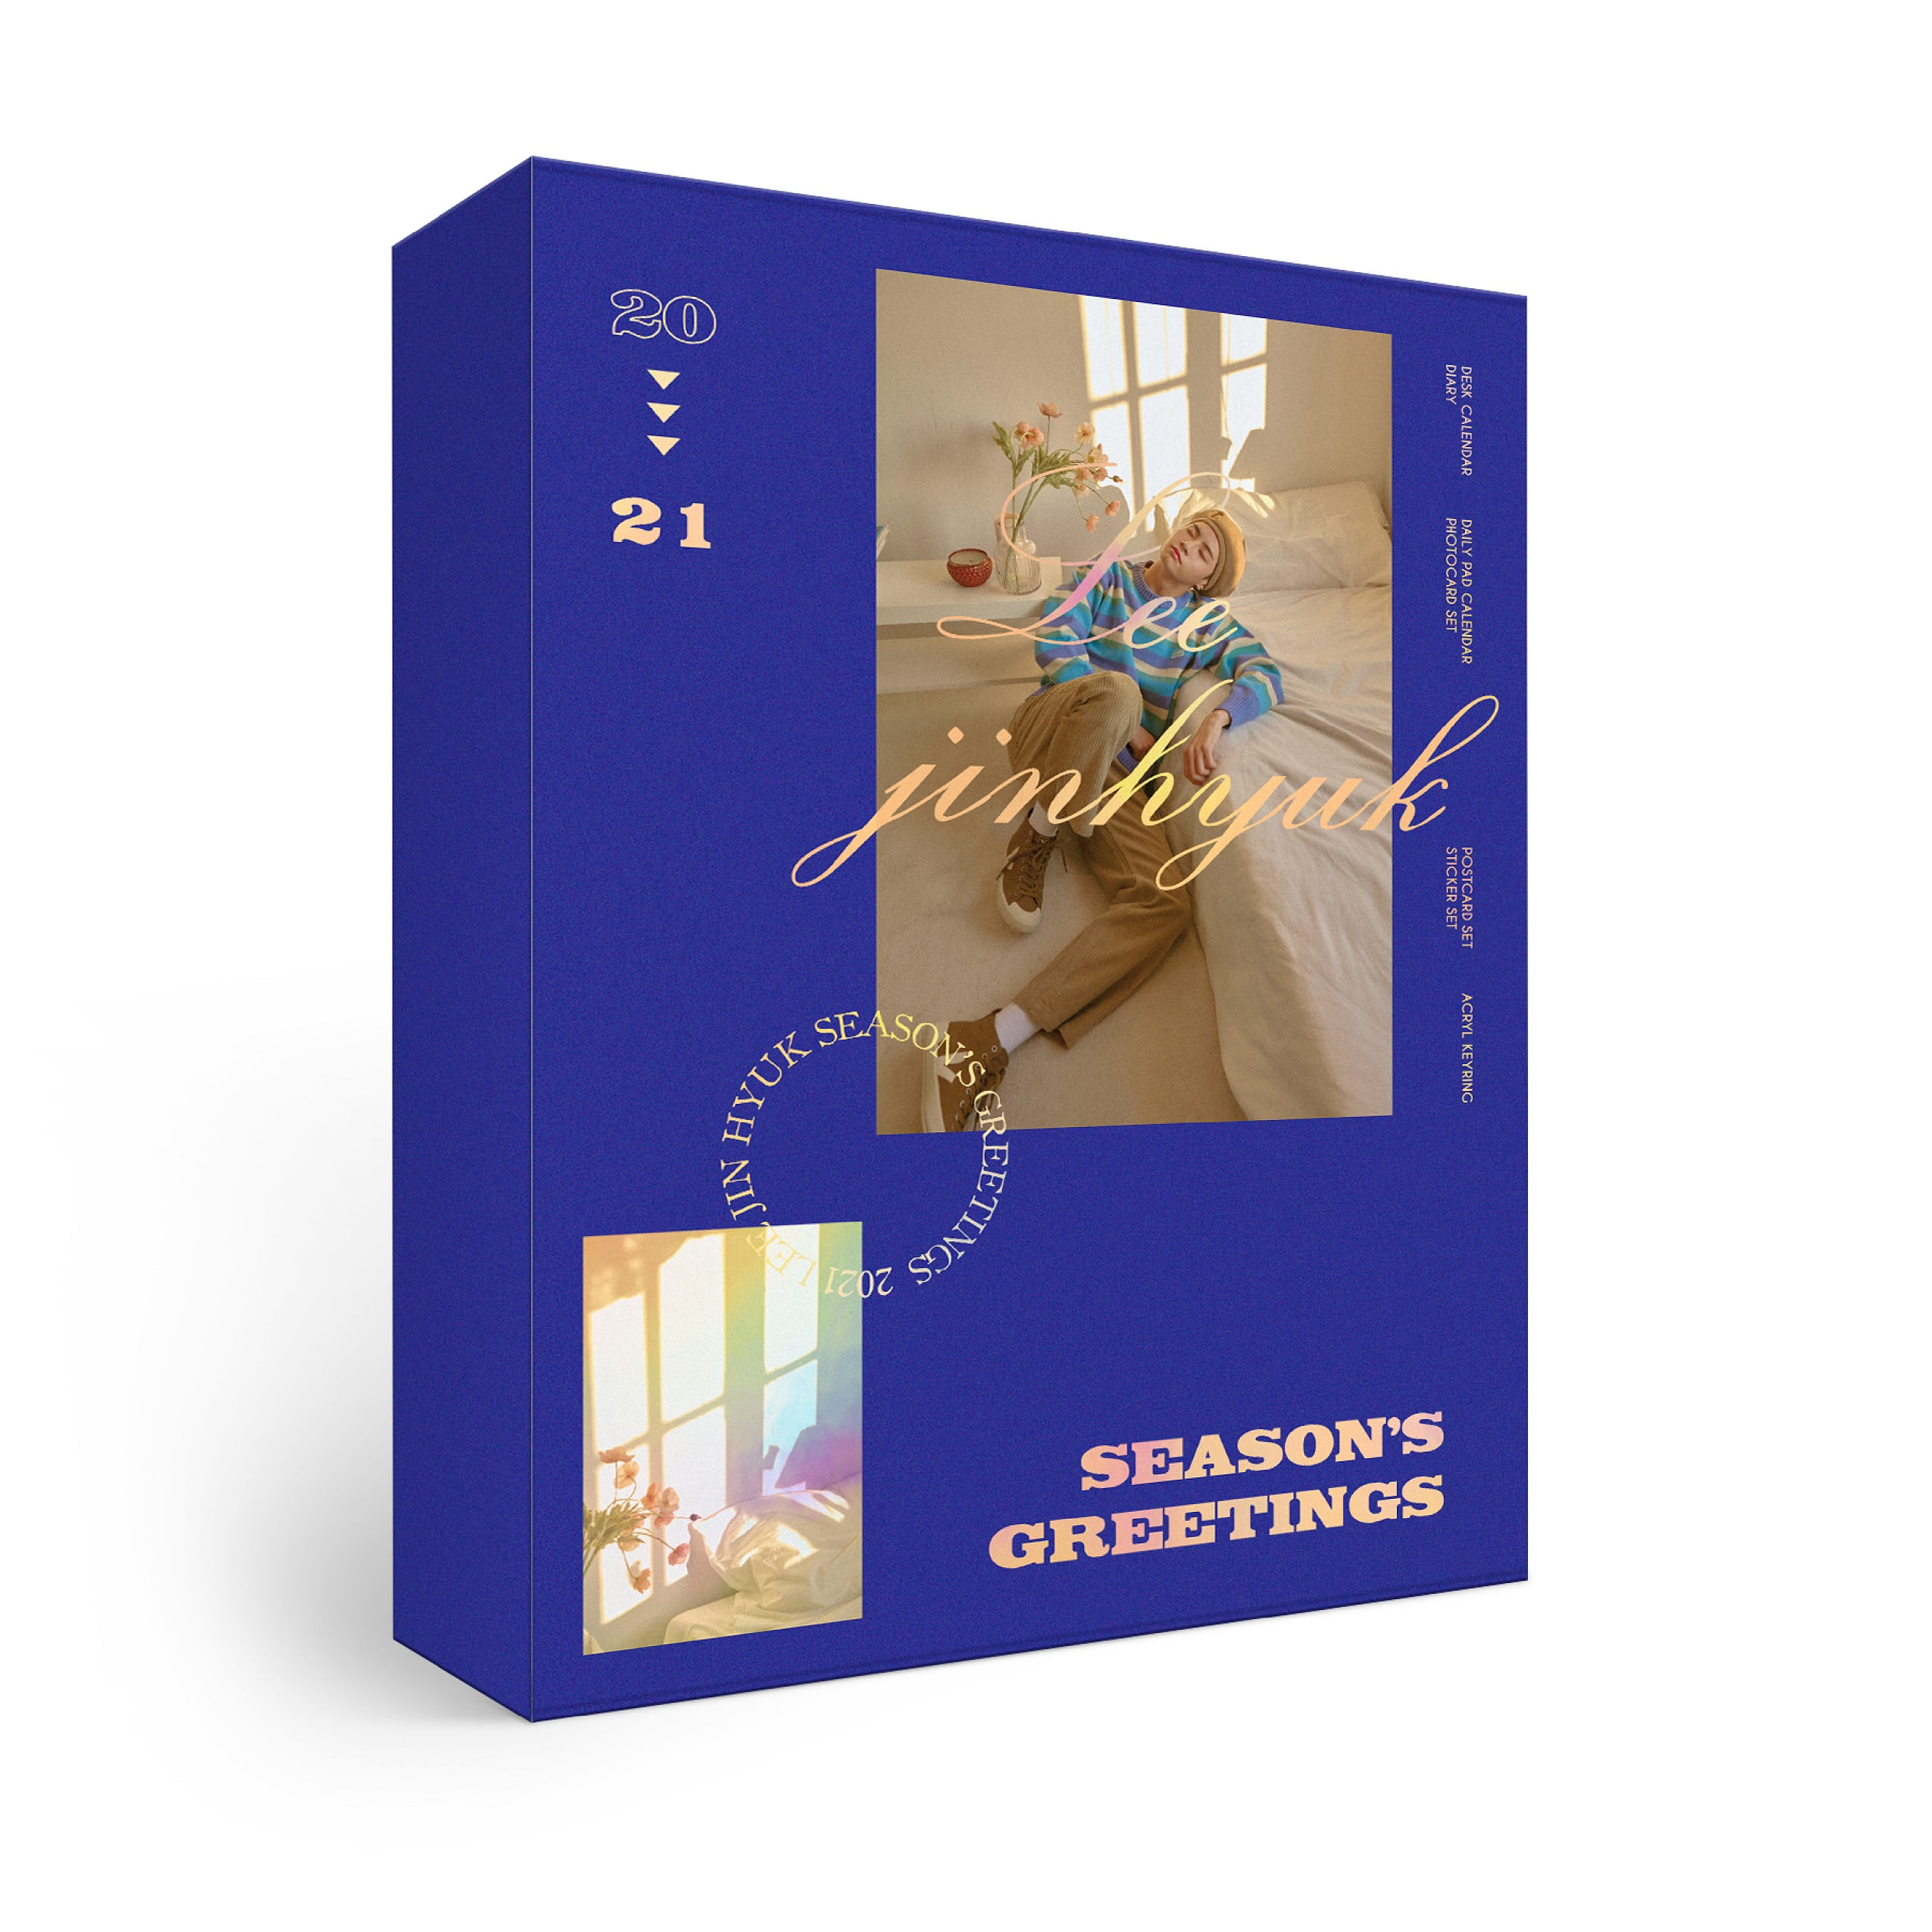 [PRE-ORDER] ★Provides KPOPSTORE Special Gift★ 이진혁 (LEE JIN HYUK) - 2021 SEASON'S GREETINGS (*No Poster)케이팝스토어(kpop store)